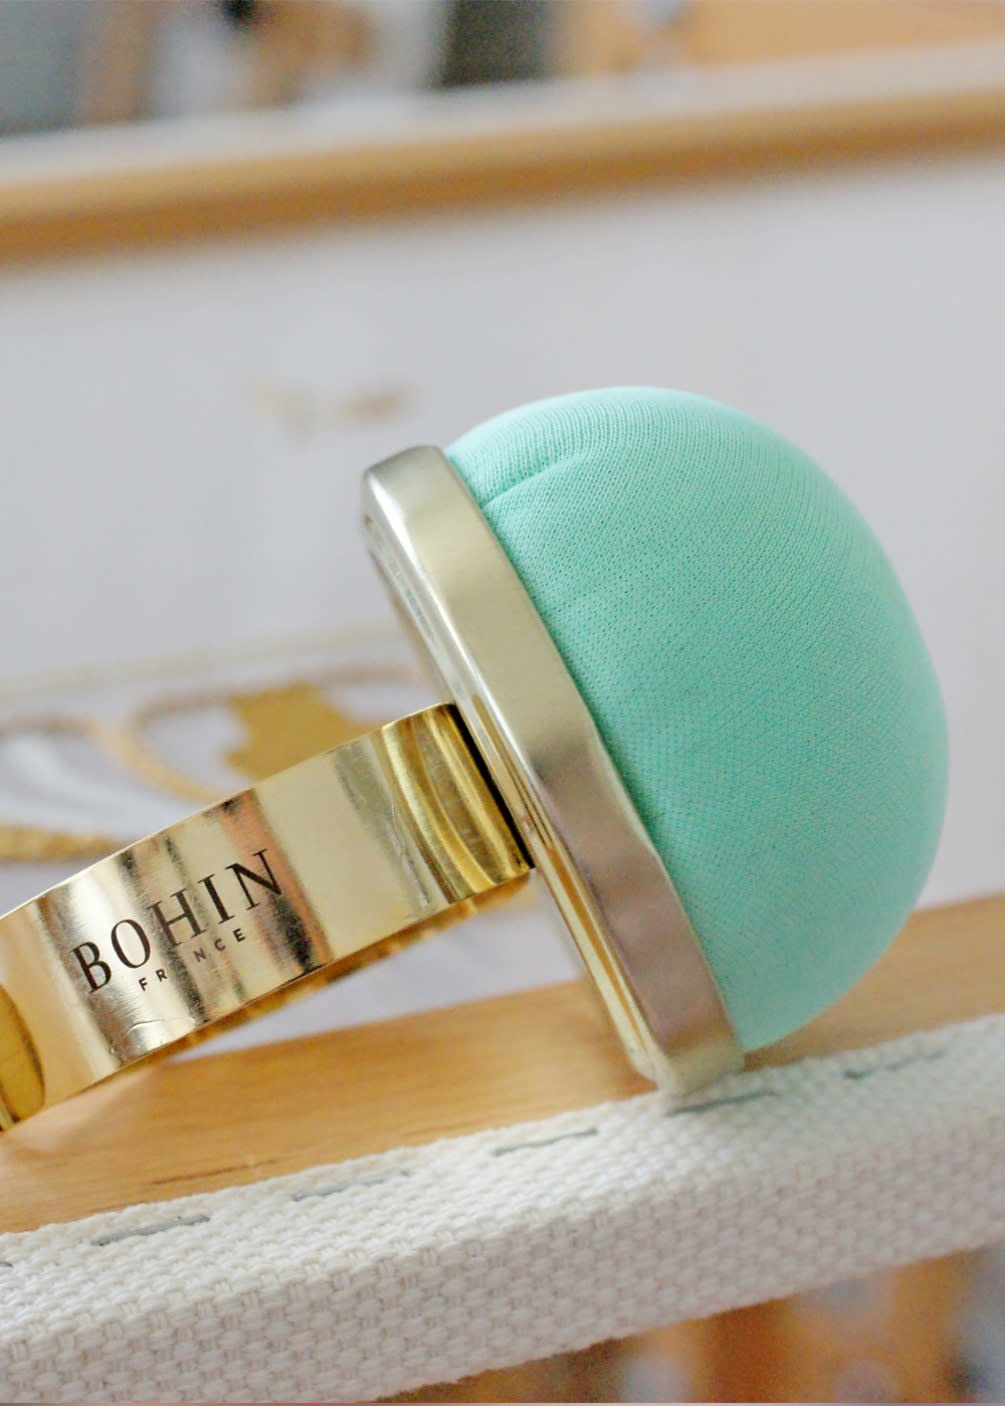 BOHIN Pin Cushion with Gilt Bracelet